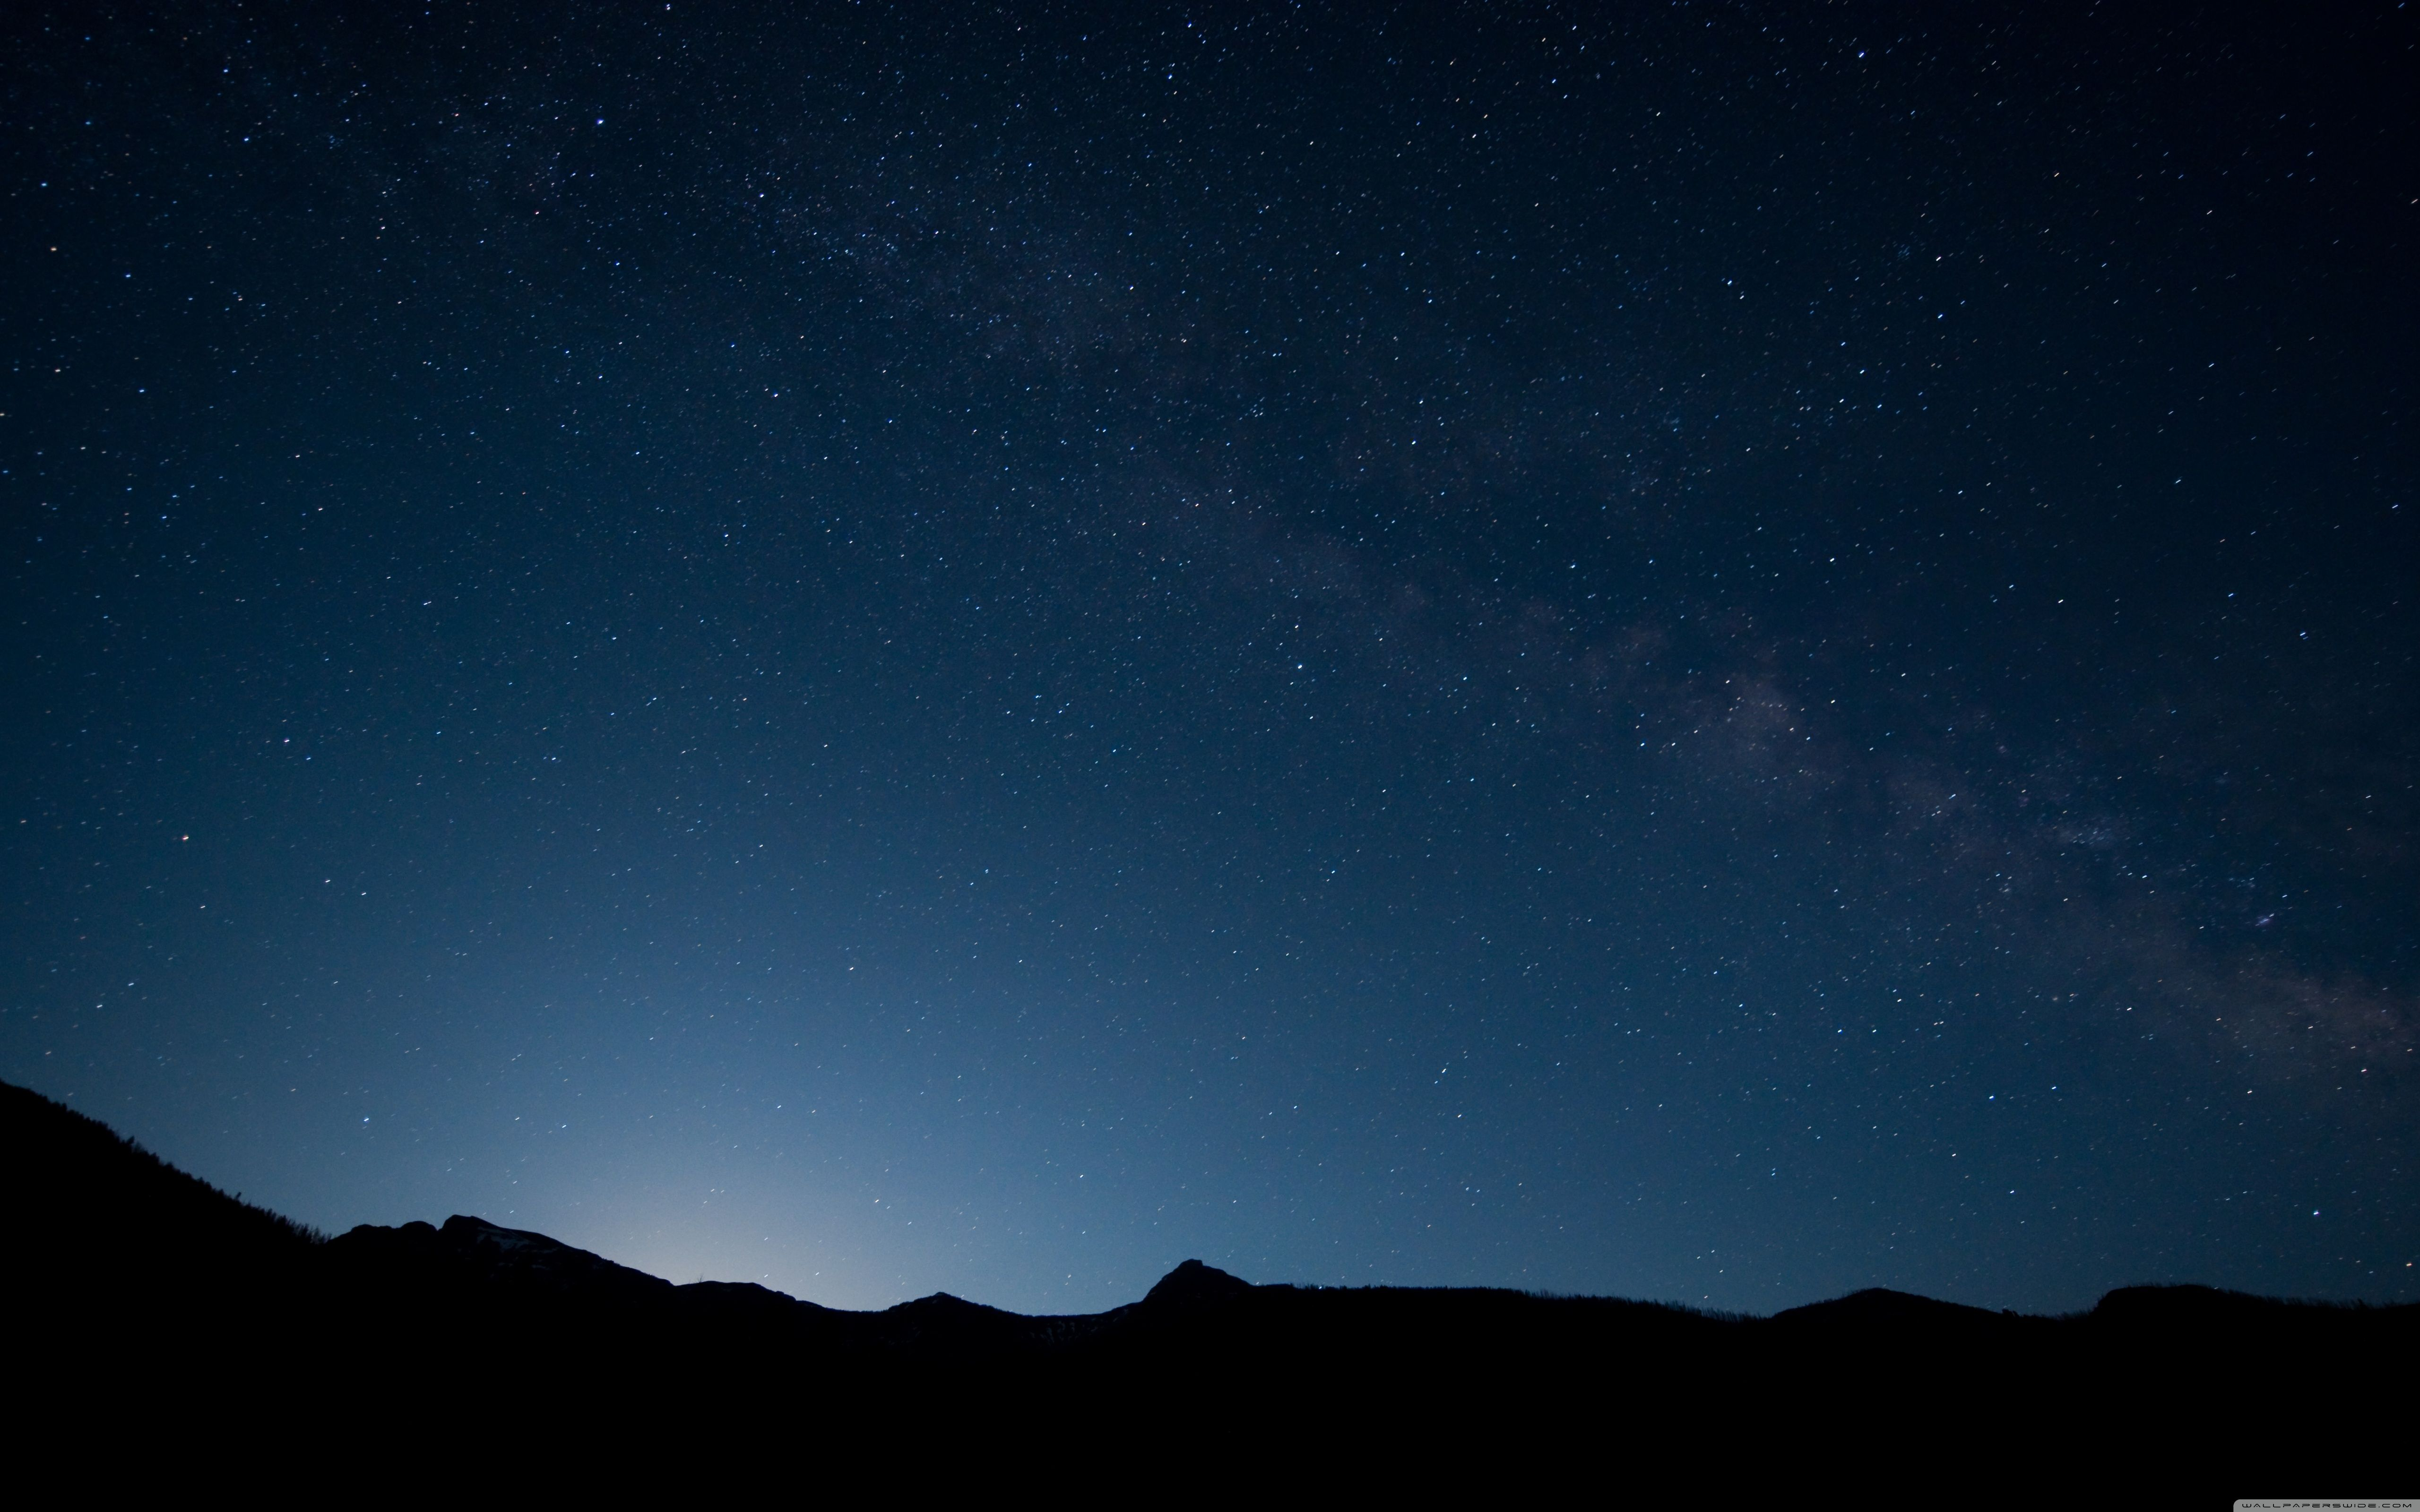 High Quality Night Sky Pictures Jpg 5120 3200